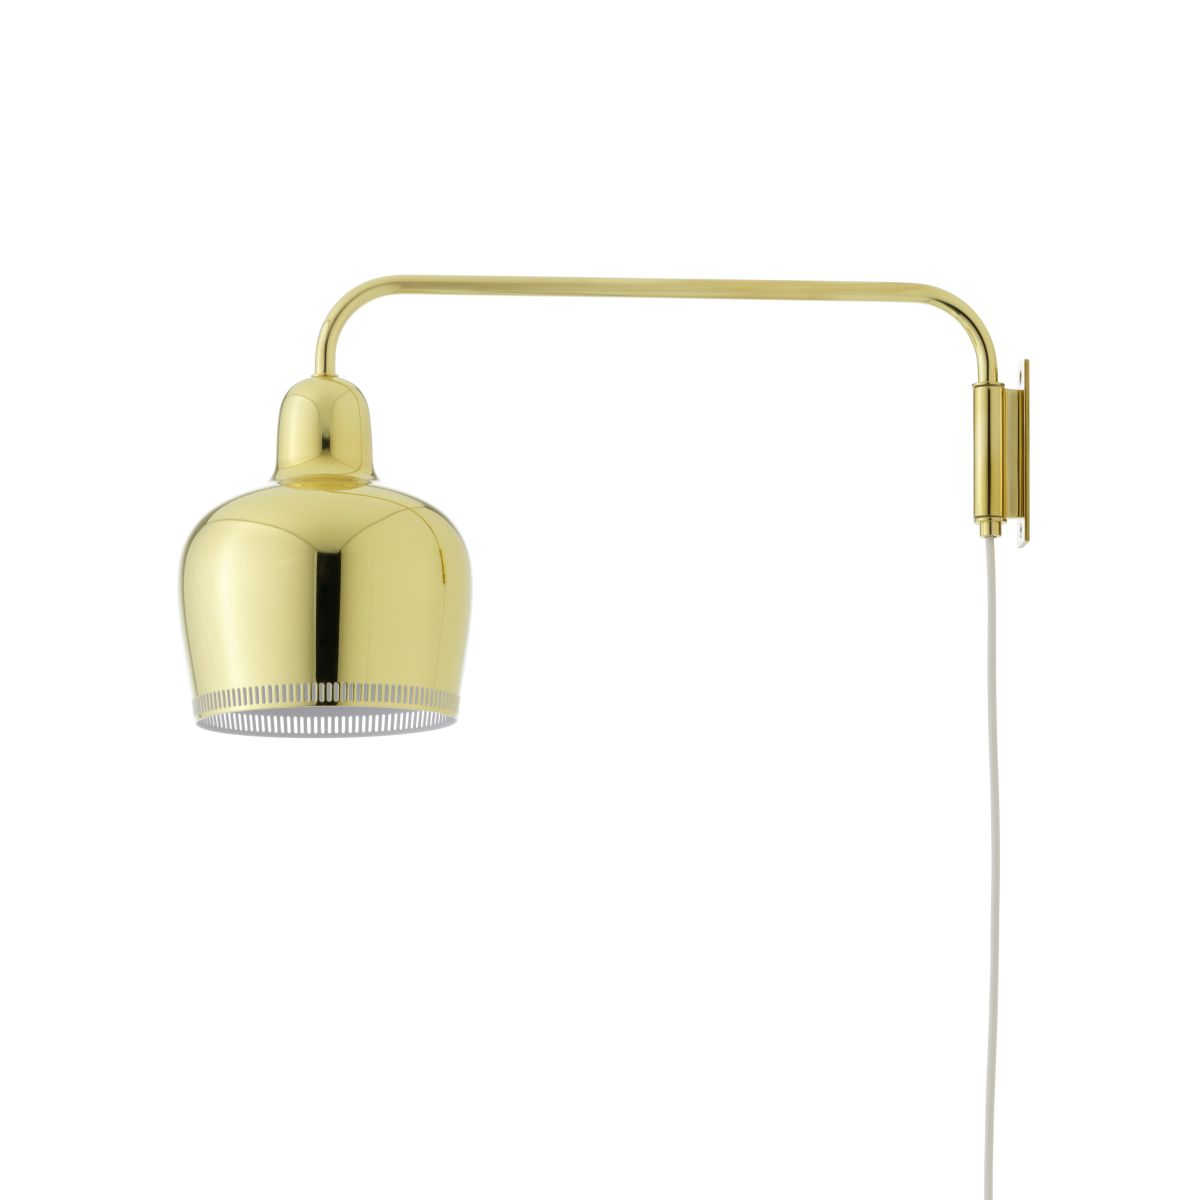 Wall-Light-A330S-_Golden-Bell_-Brass-Off_F_Web-2400816